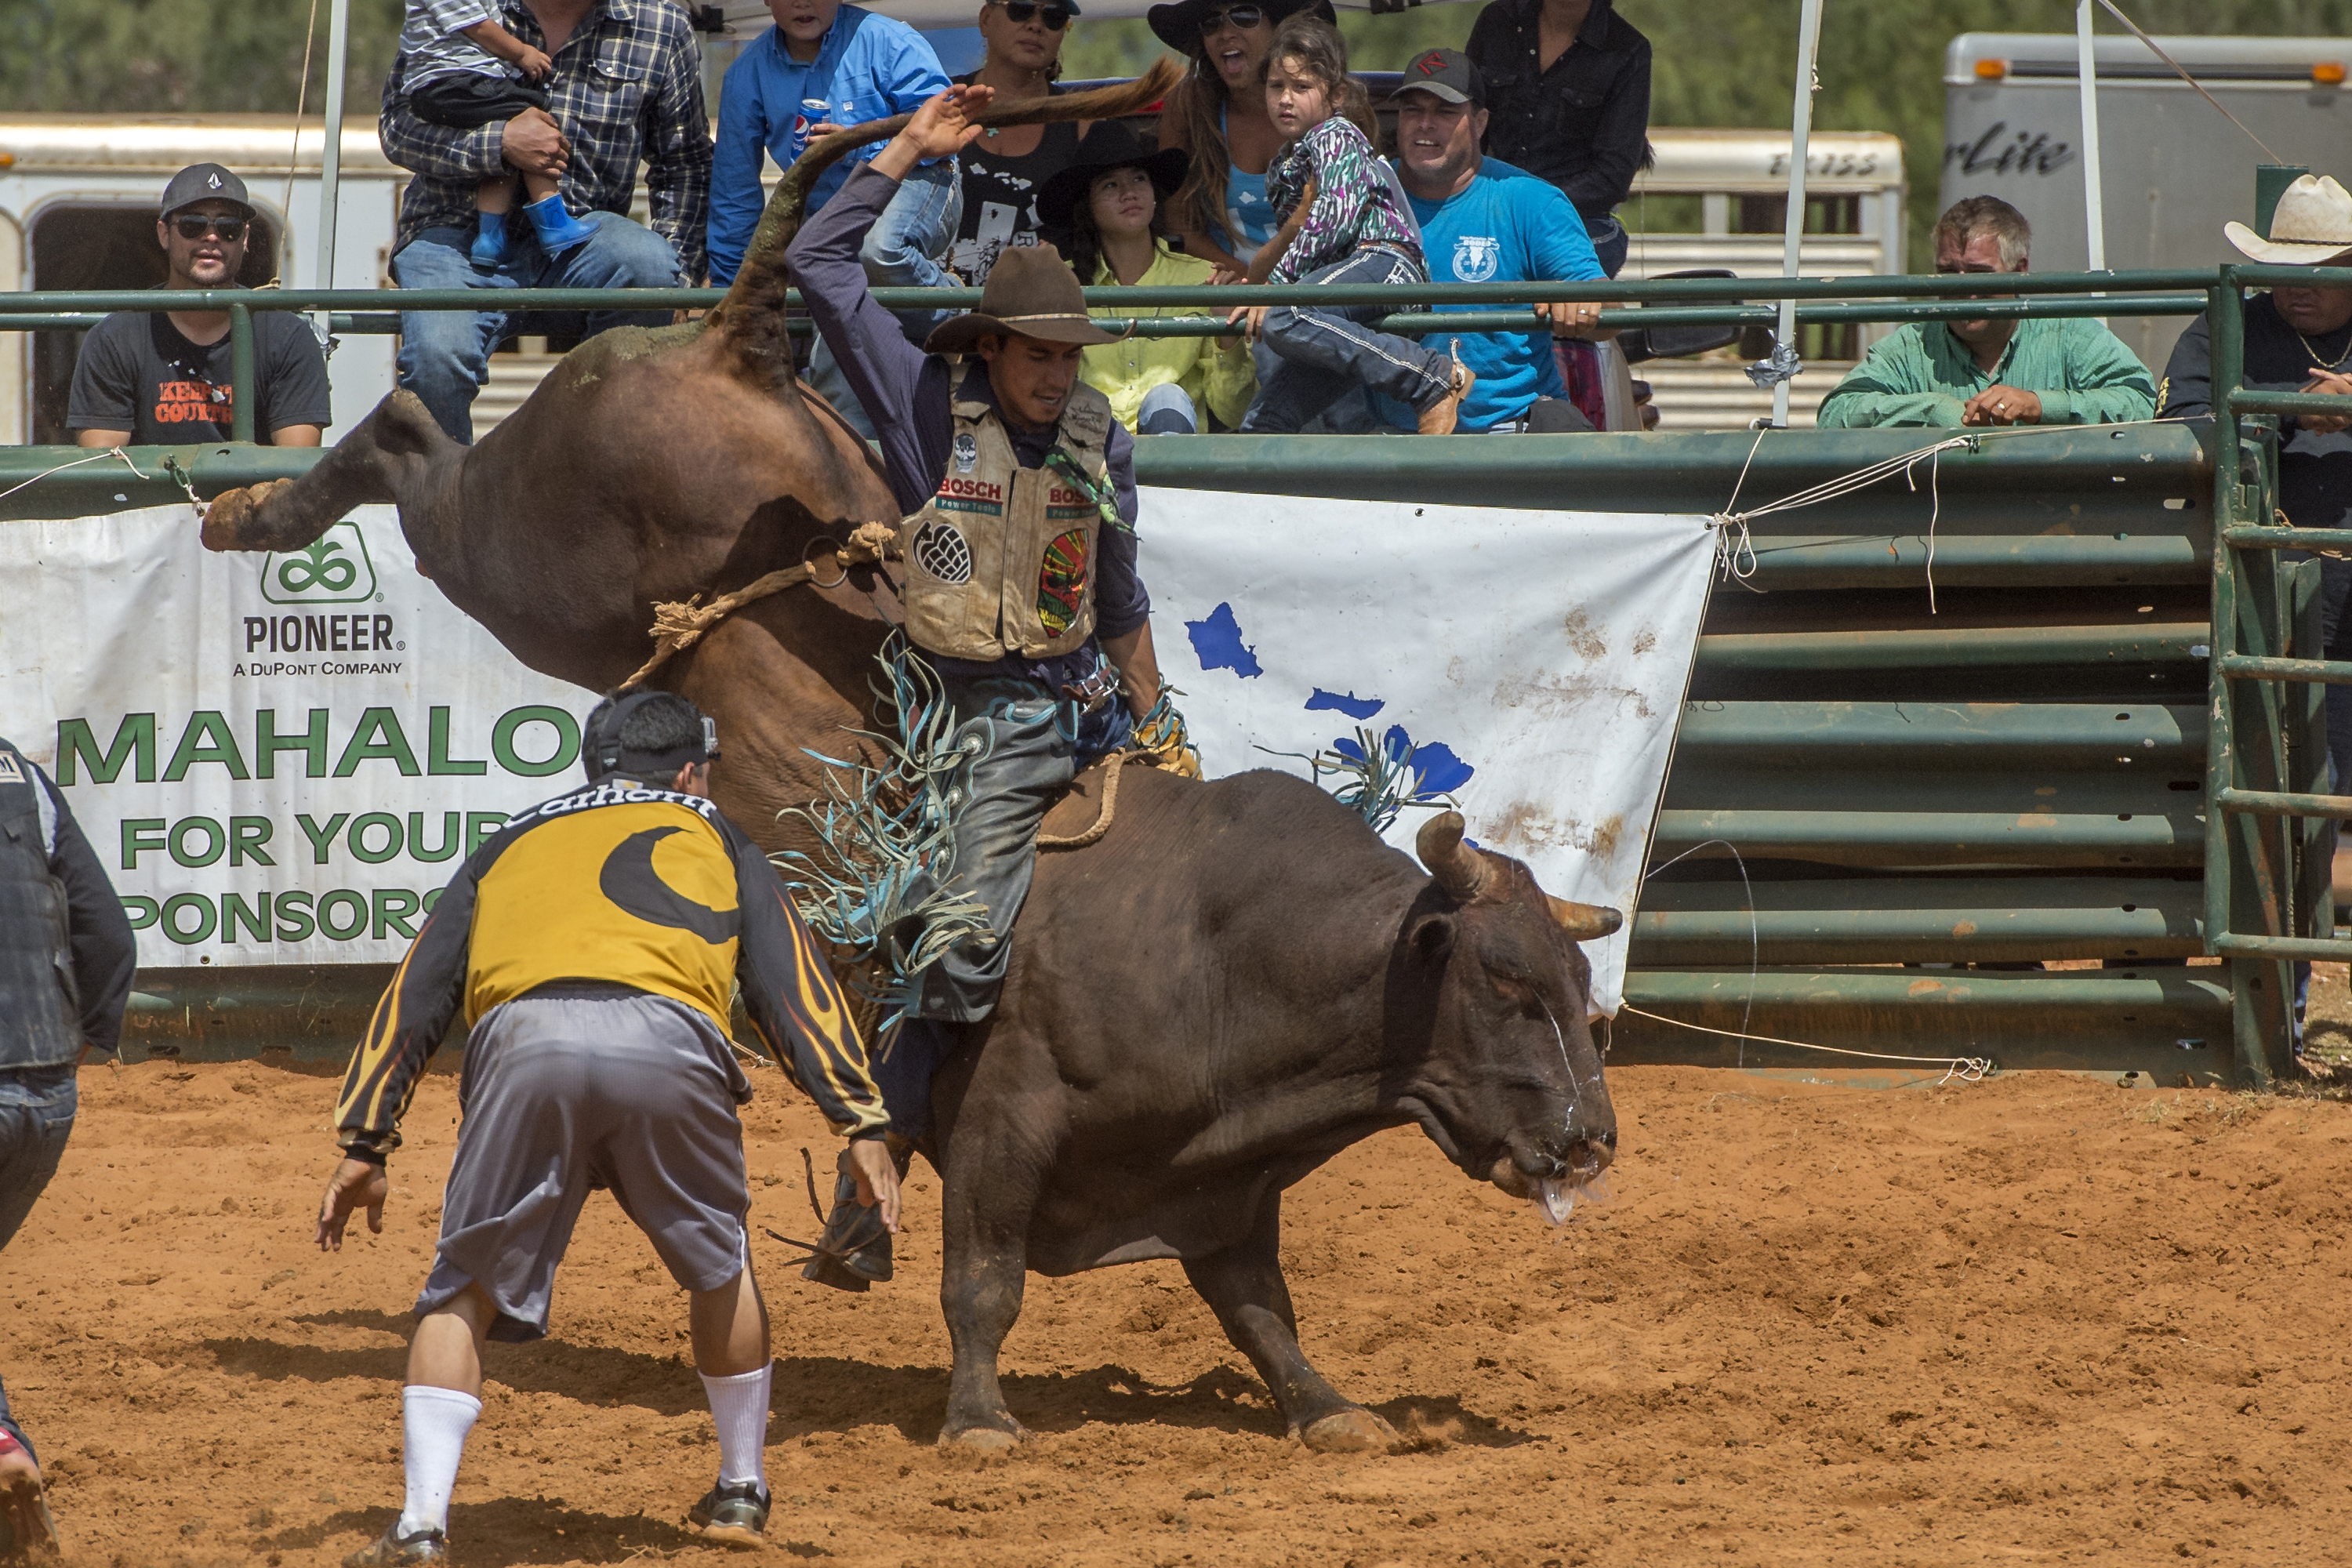 Koloa_Ranch_Bull Riding